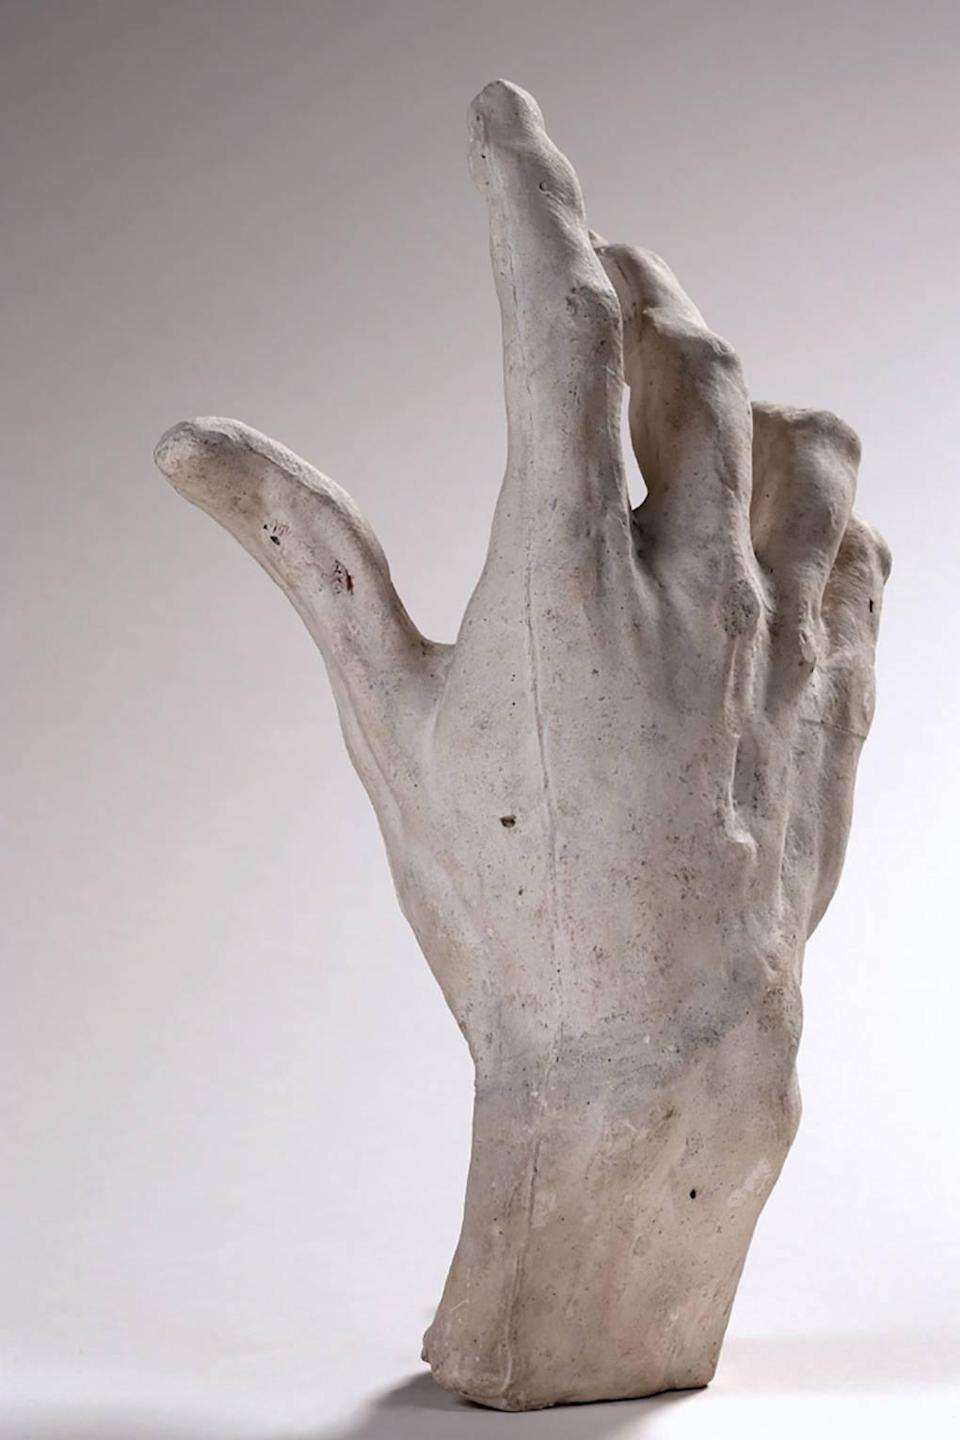 Right hand of Pierre and Jacques de Wissant, 1885–86Musée Rodin